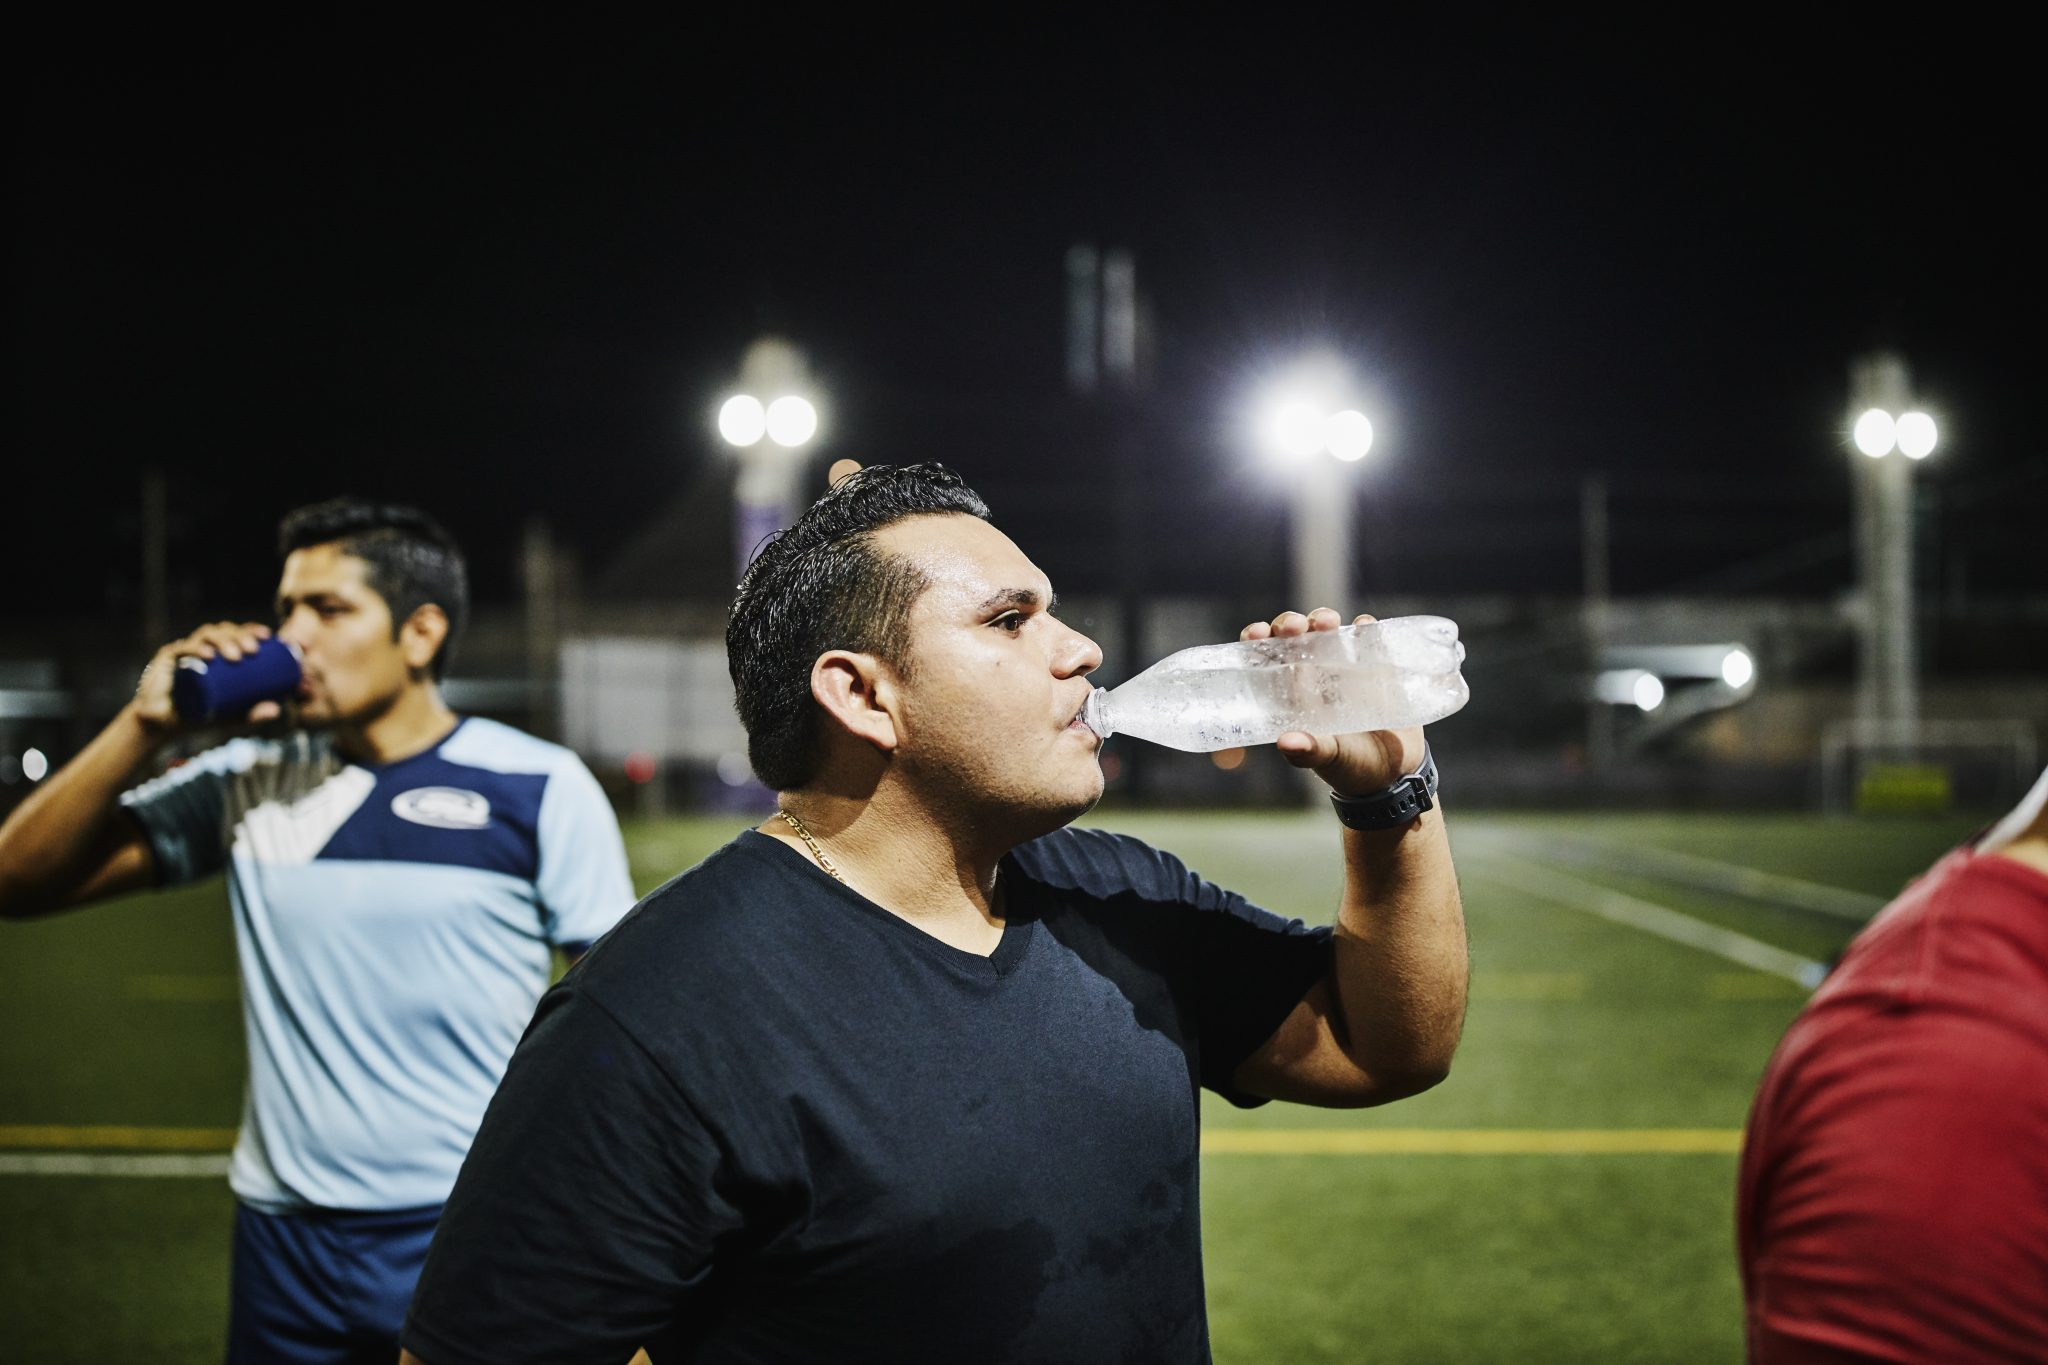 Male soccer player drinking water after nighttime game with friends